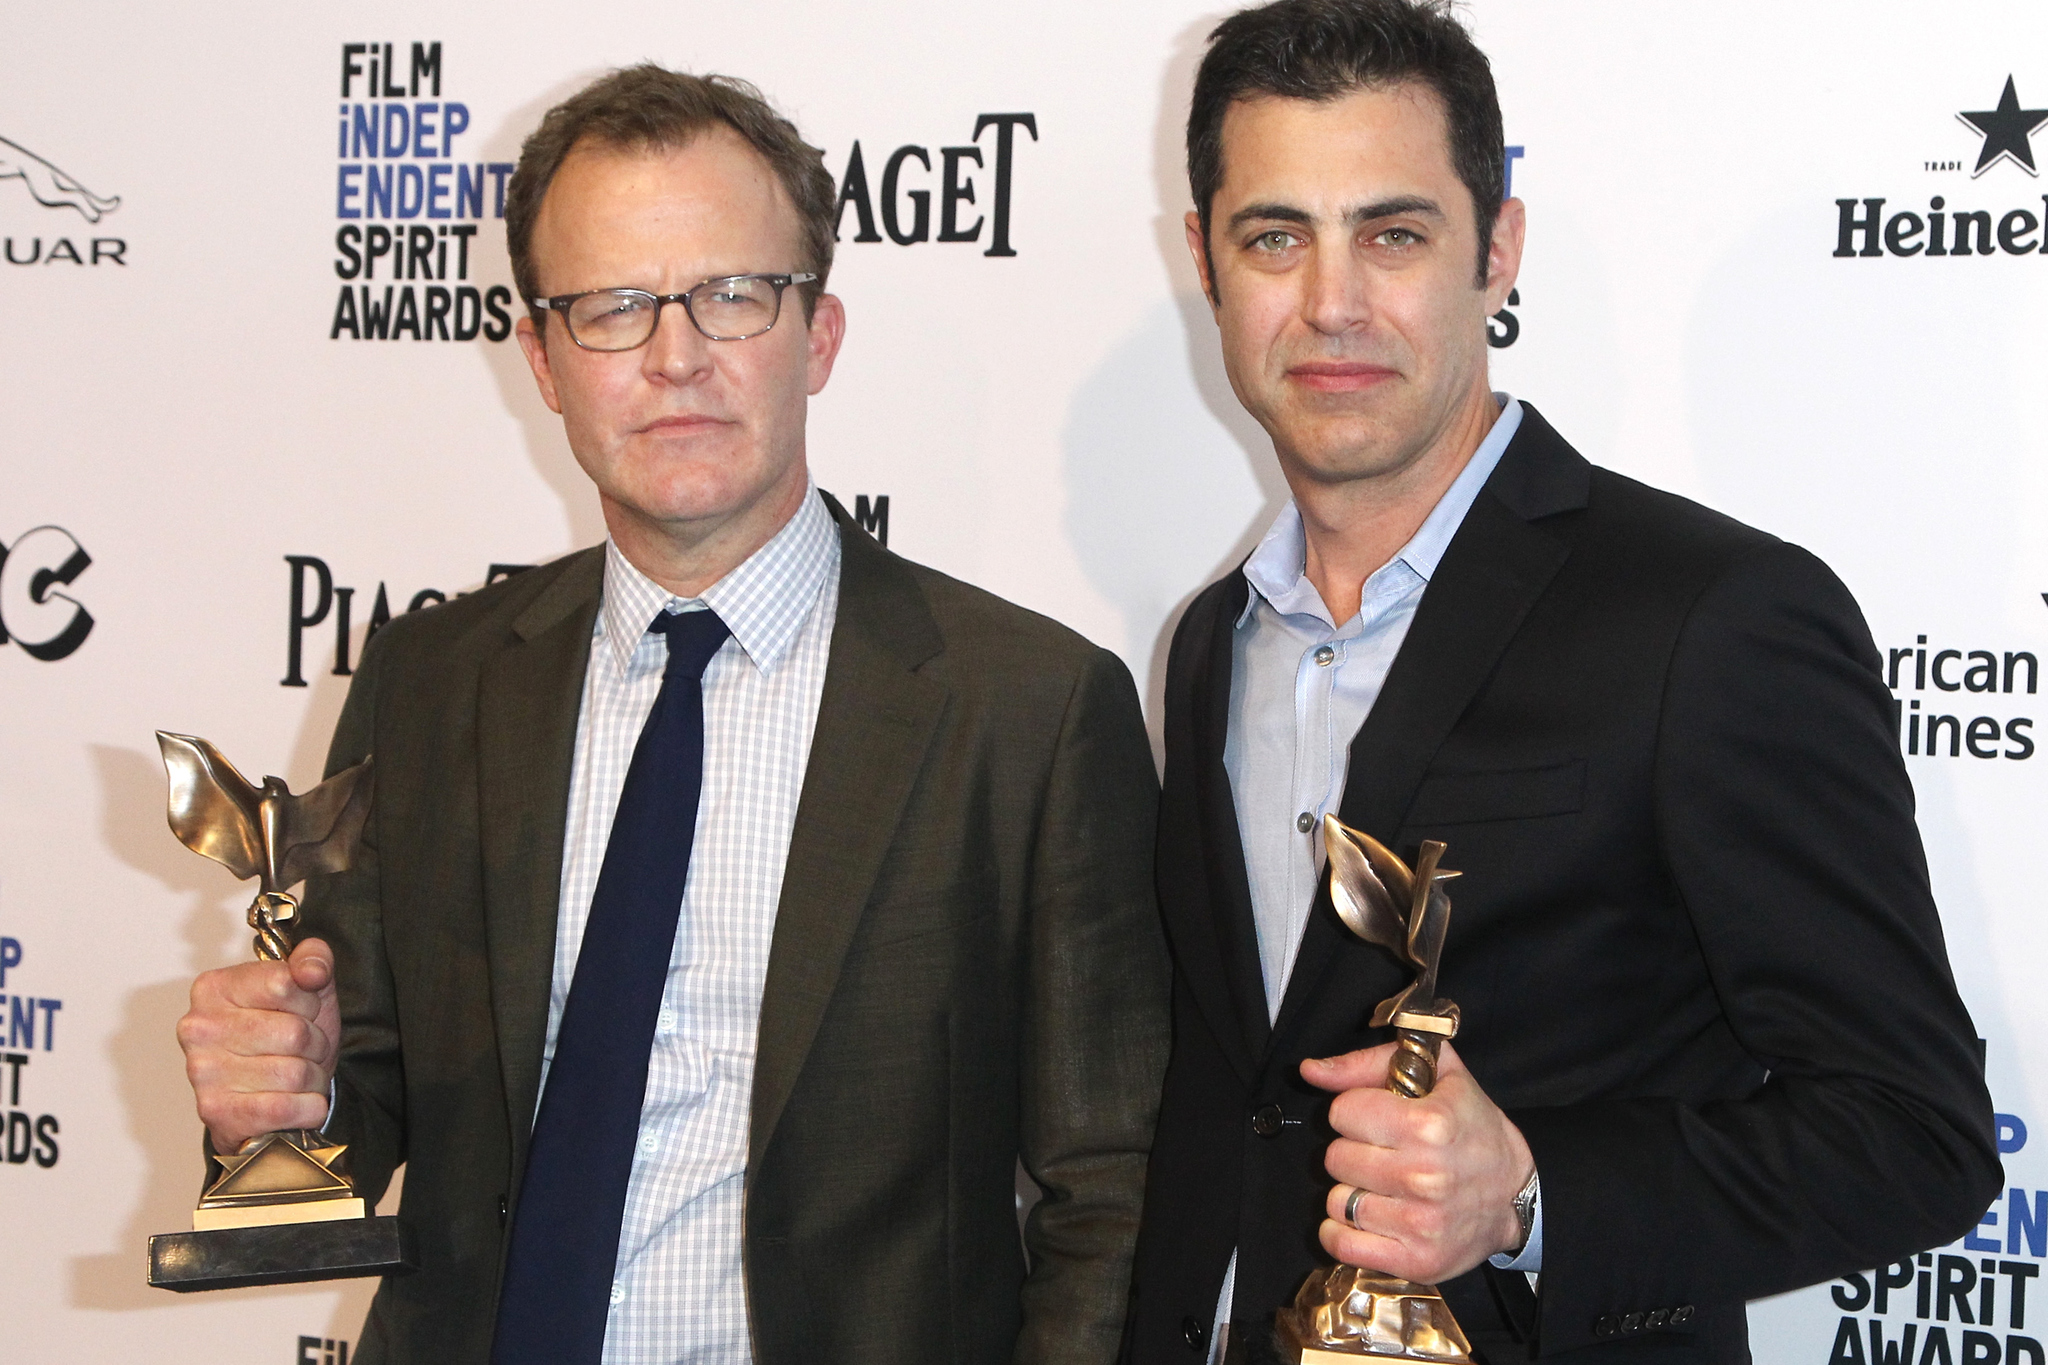 Tom McCarthy and Josh Singer at an event for 31st Film Independent Spirit Awards (2016)